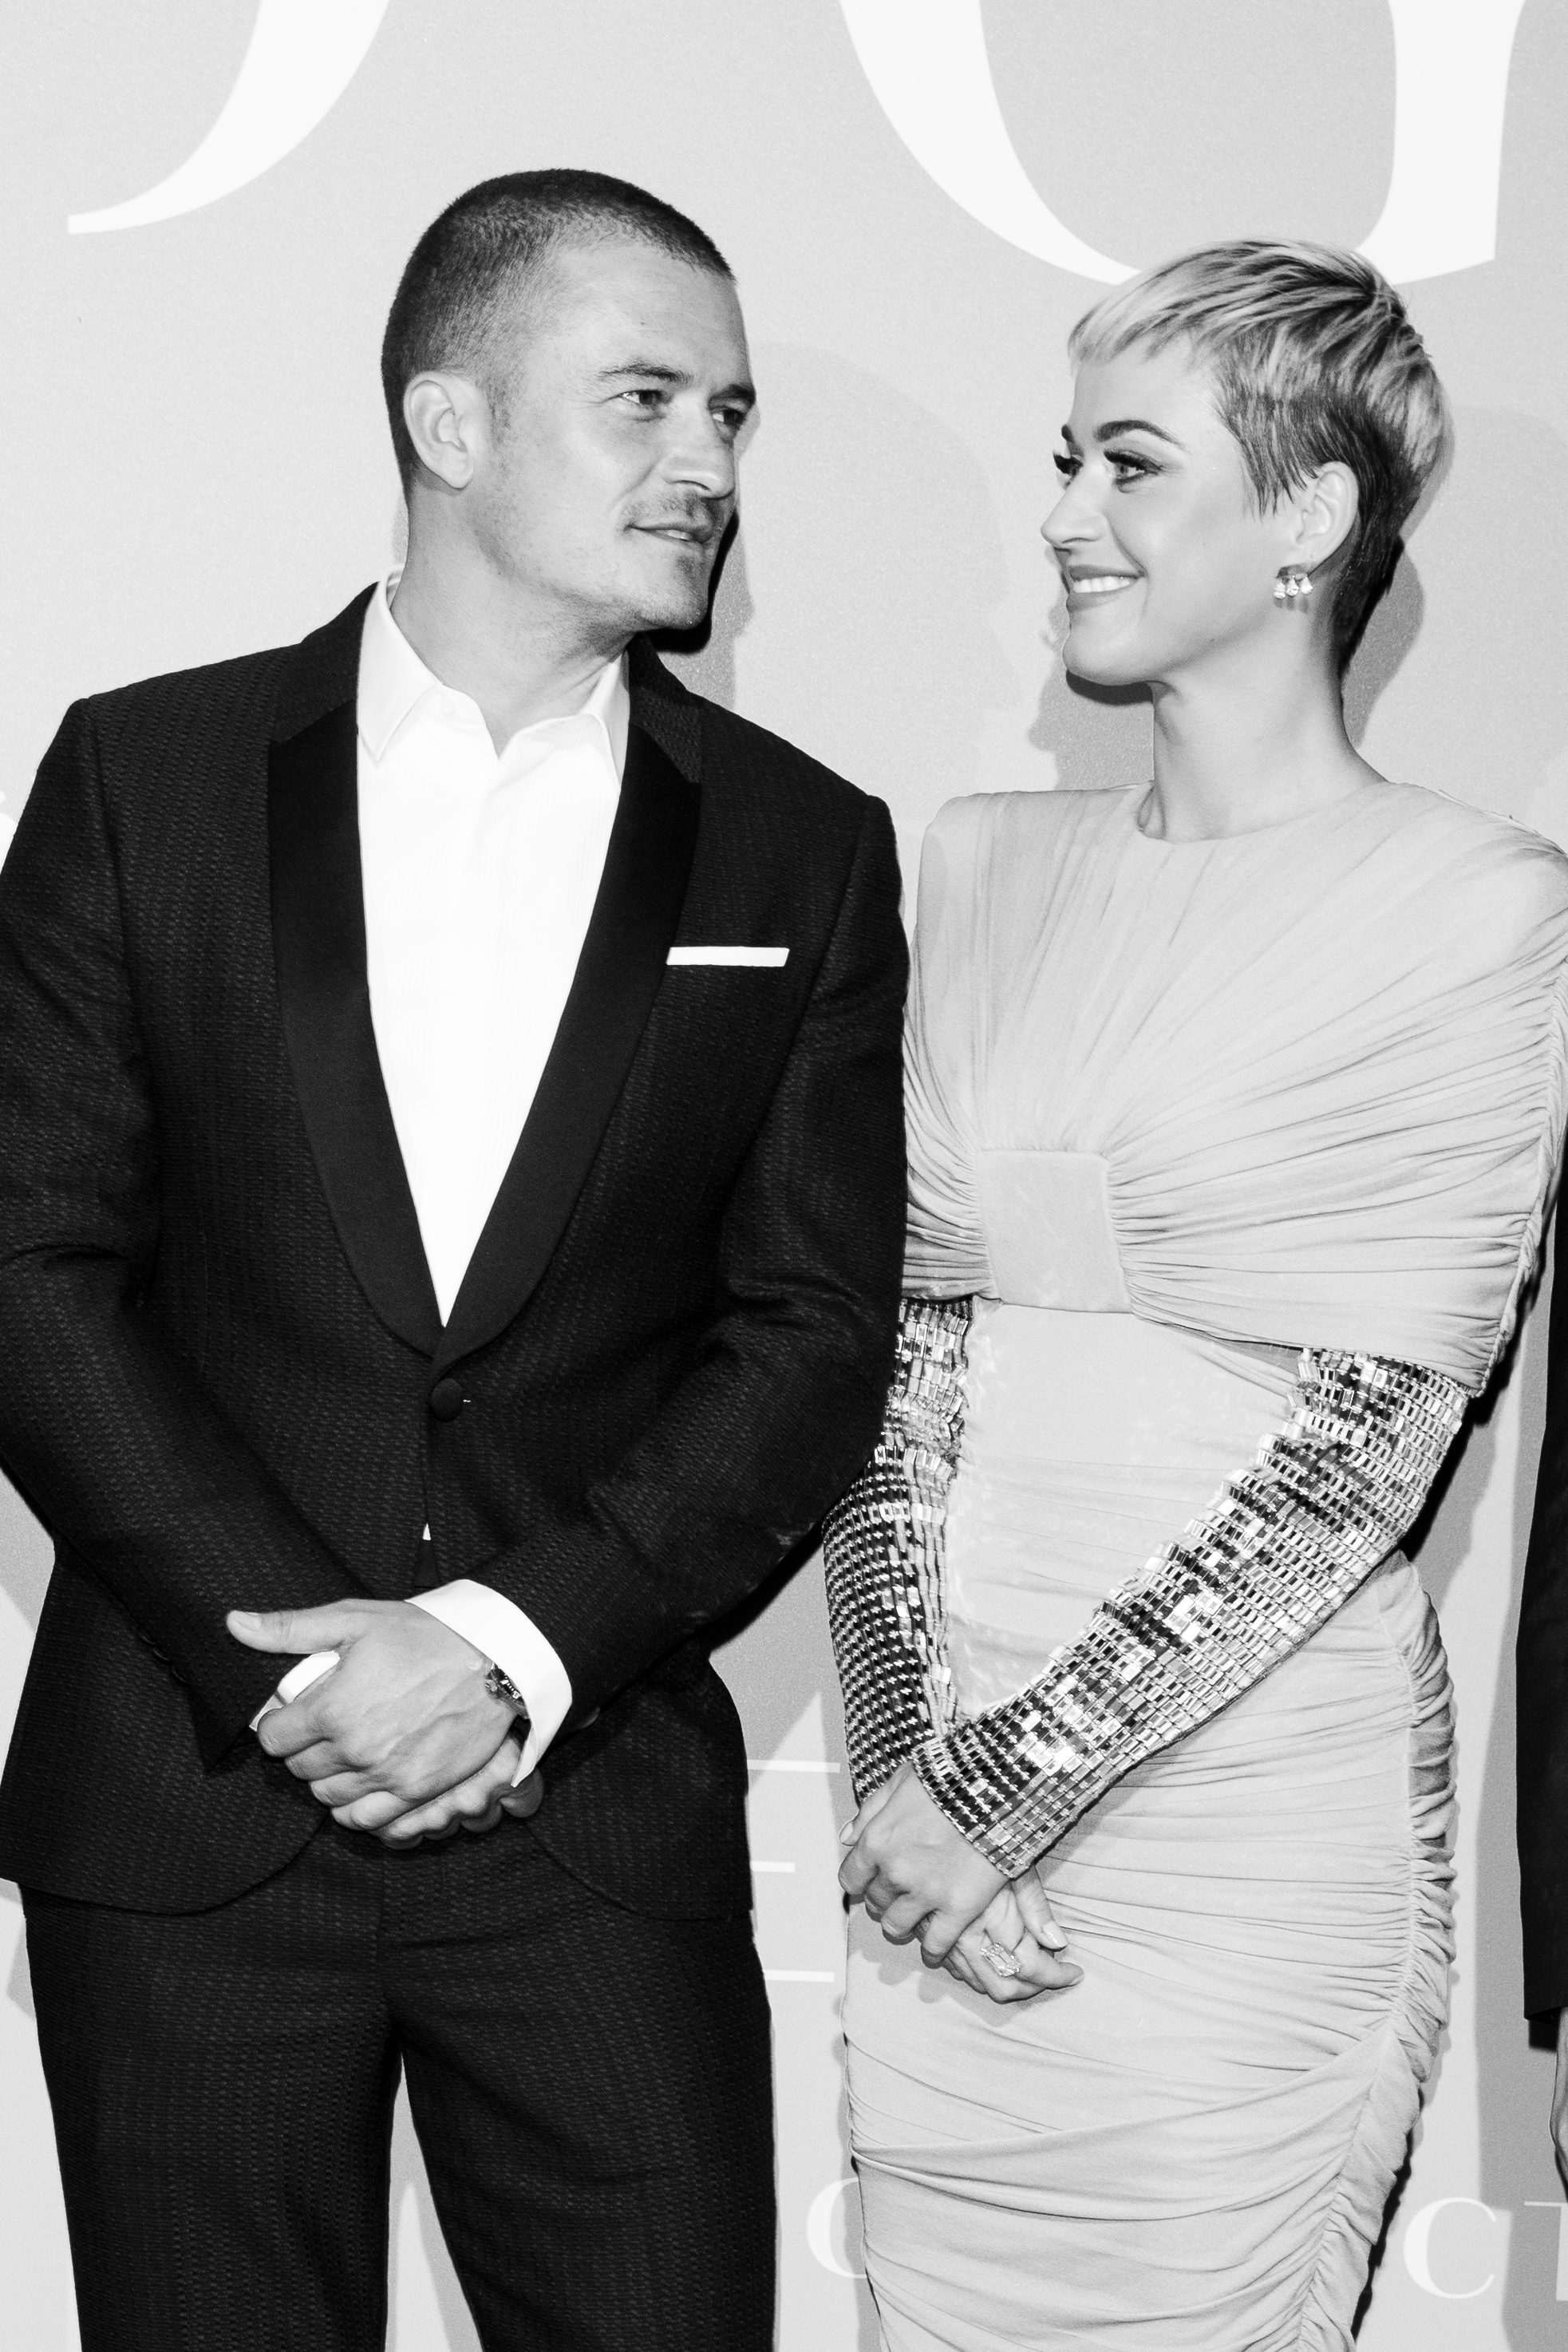 Katy Perry and Orlando Bloom Are Considering a Destination Wedding